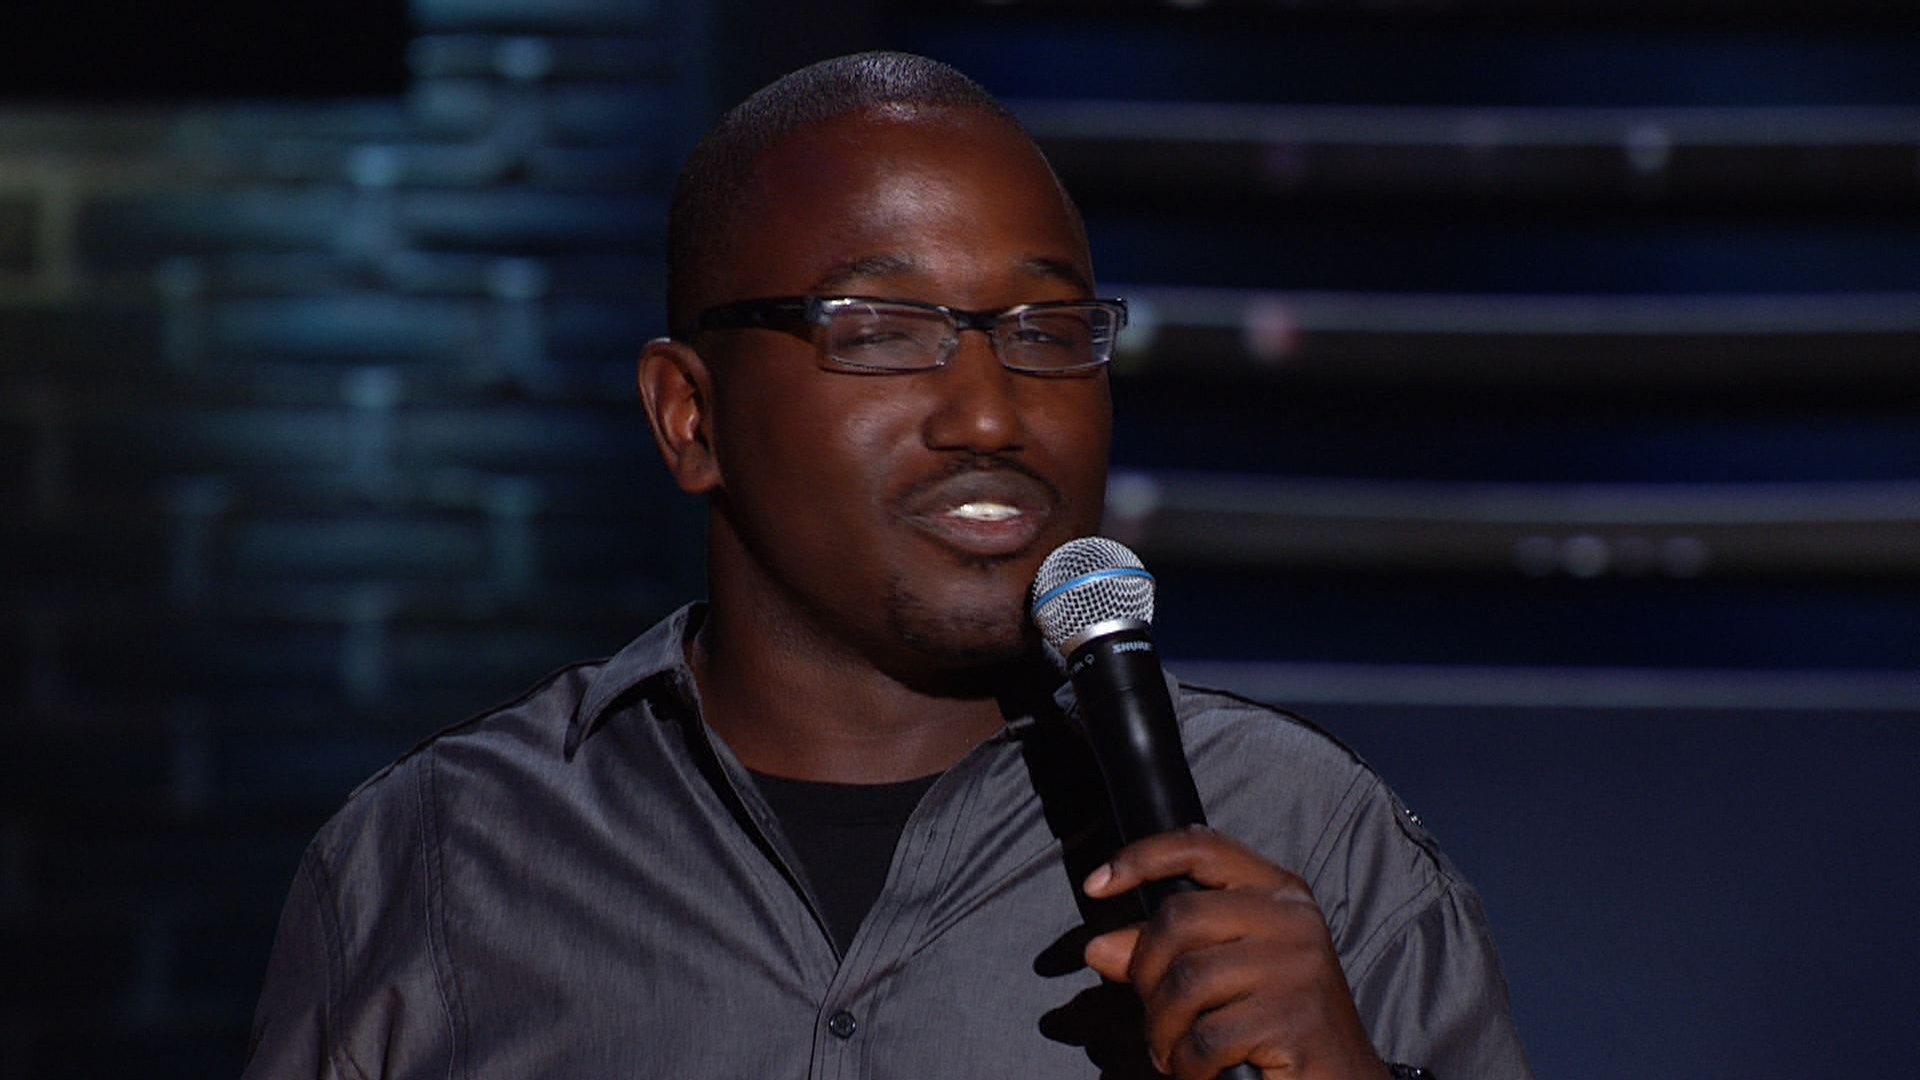 Hannibal Buress - White Strip Clubs